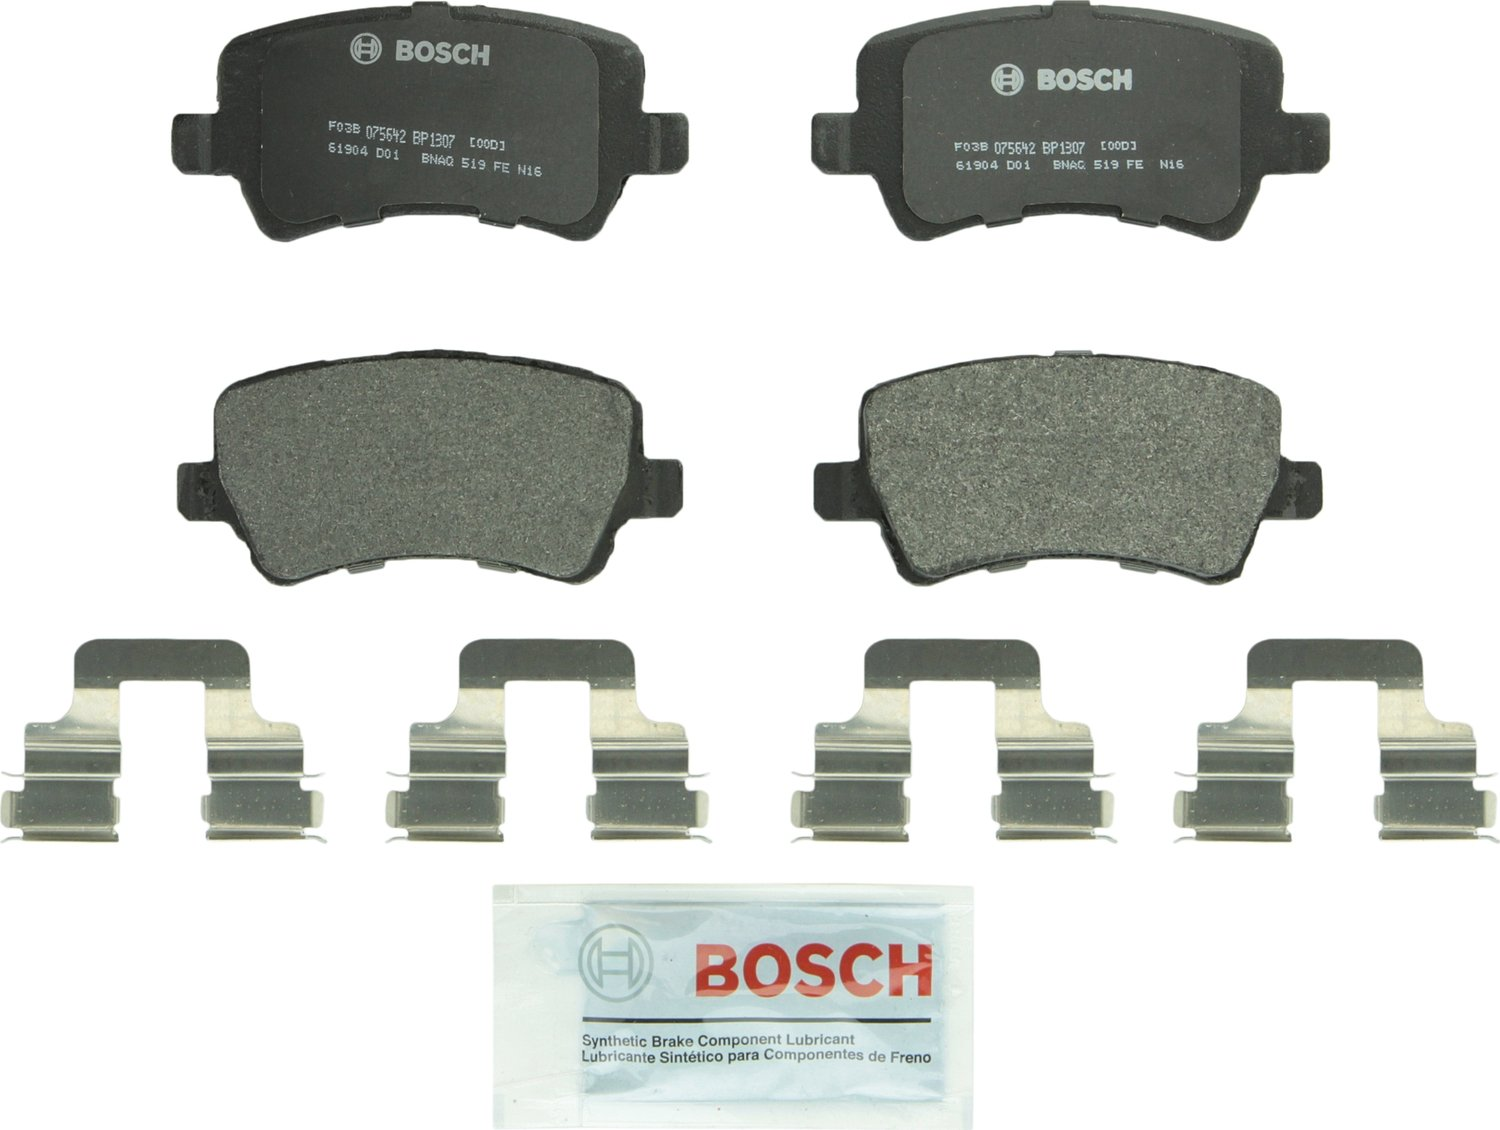 Bosch BP1307 QuietCast Premium Semi-Metallic Disc Brake Pad Set For: Land Rover Range Rover Evoque; Volvo S60, S60 Cross Country, S80, V60, V60 Cross Country, V70, XC60, XC70, Rear